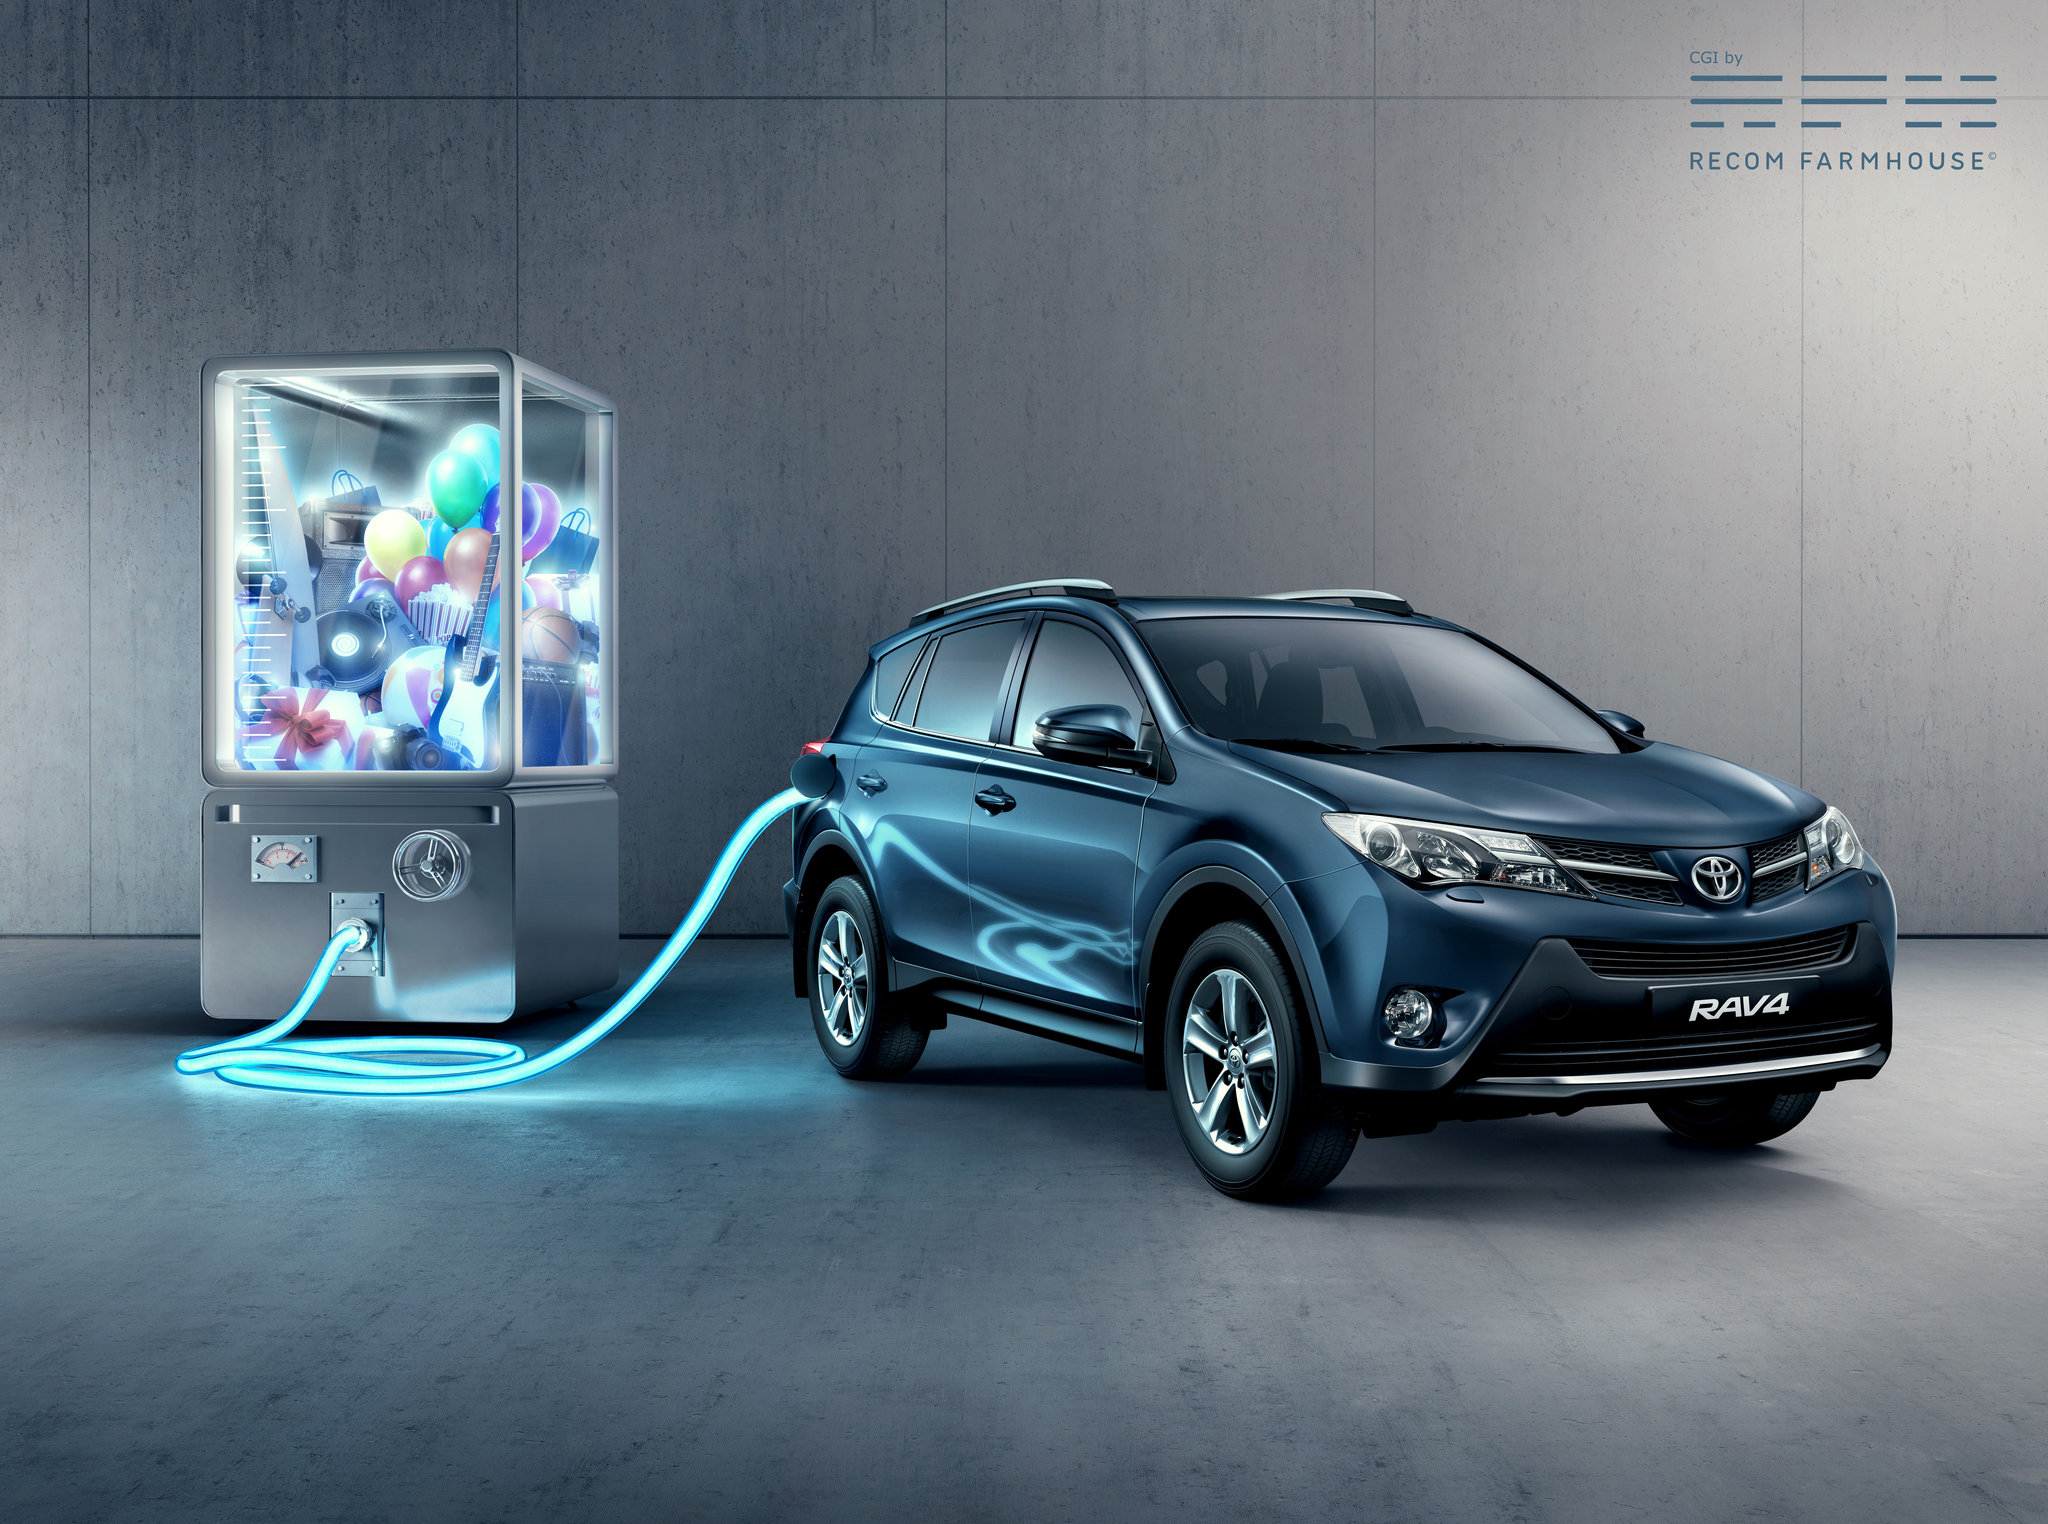 CGI, Interior, Rav4, __unsorted_keywords, artificial lighting, automotive, car, cars, cold, concrete, connotations, display, electric, electric engine, electric motor, energy, features, manufacturer, neon, pump, toyota, toys